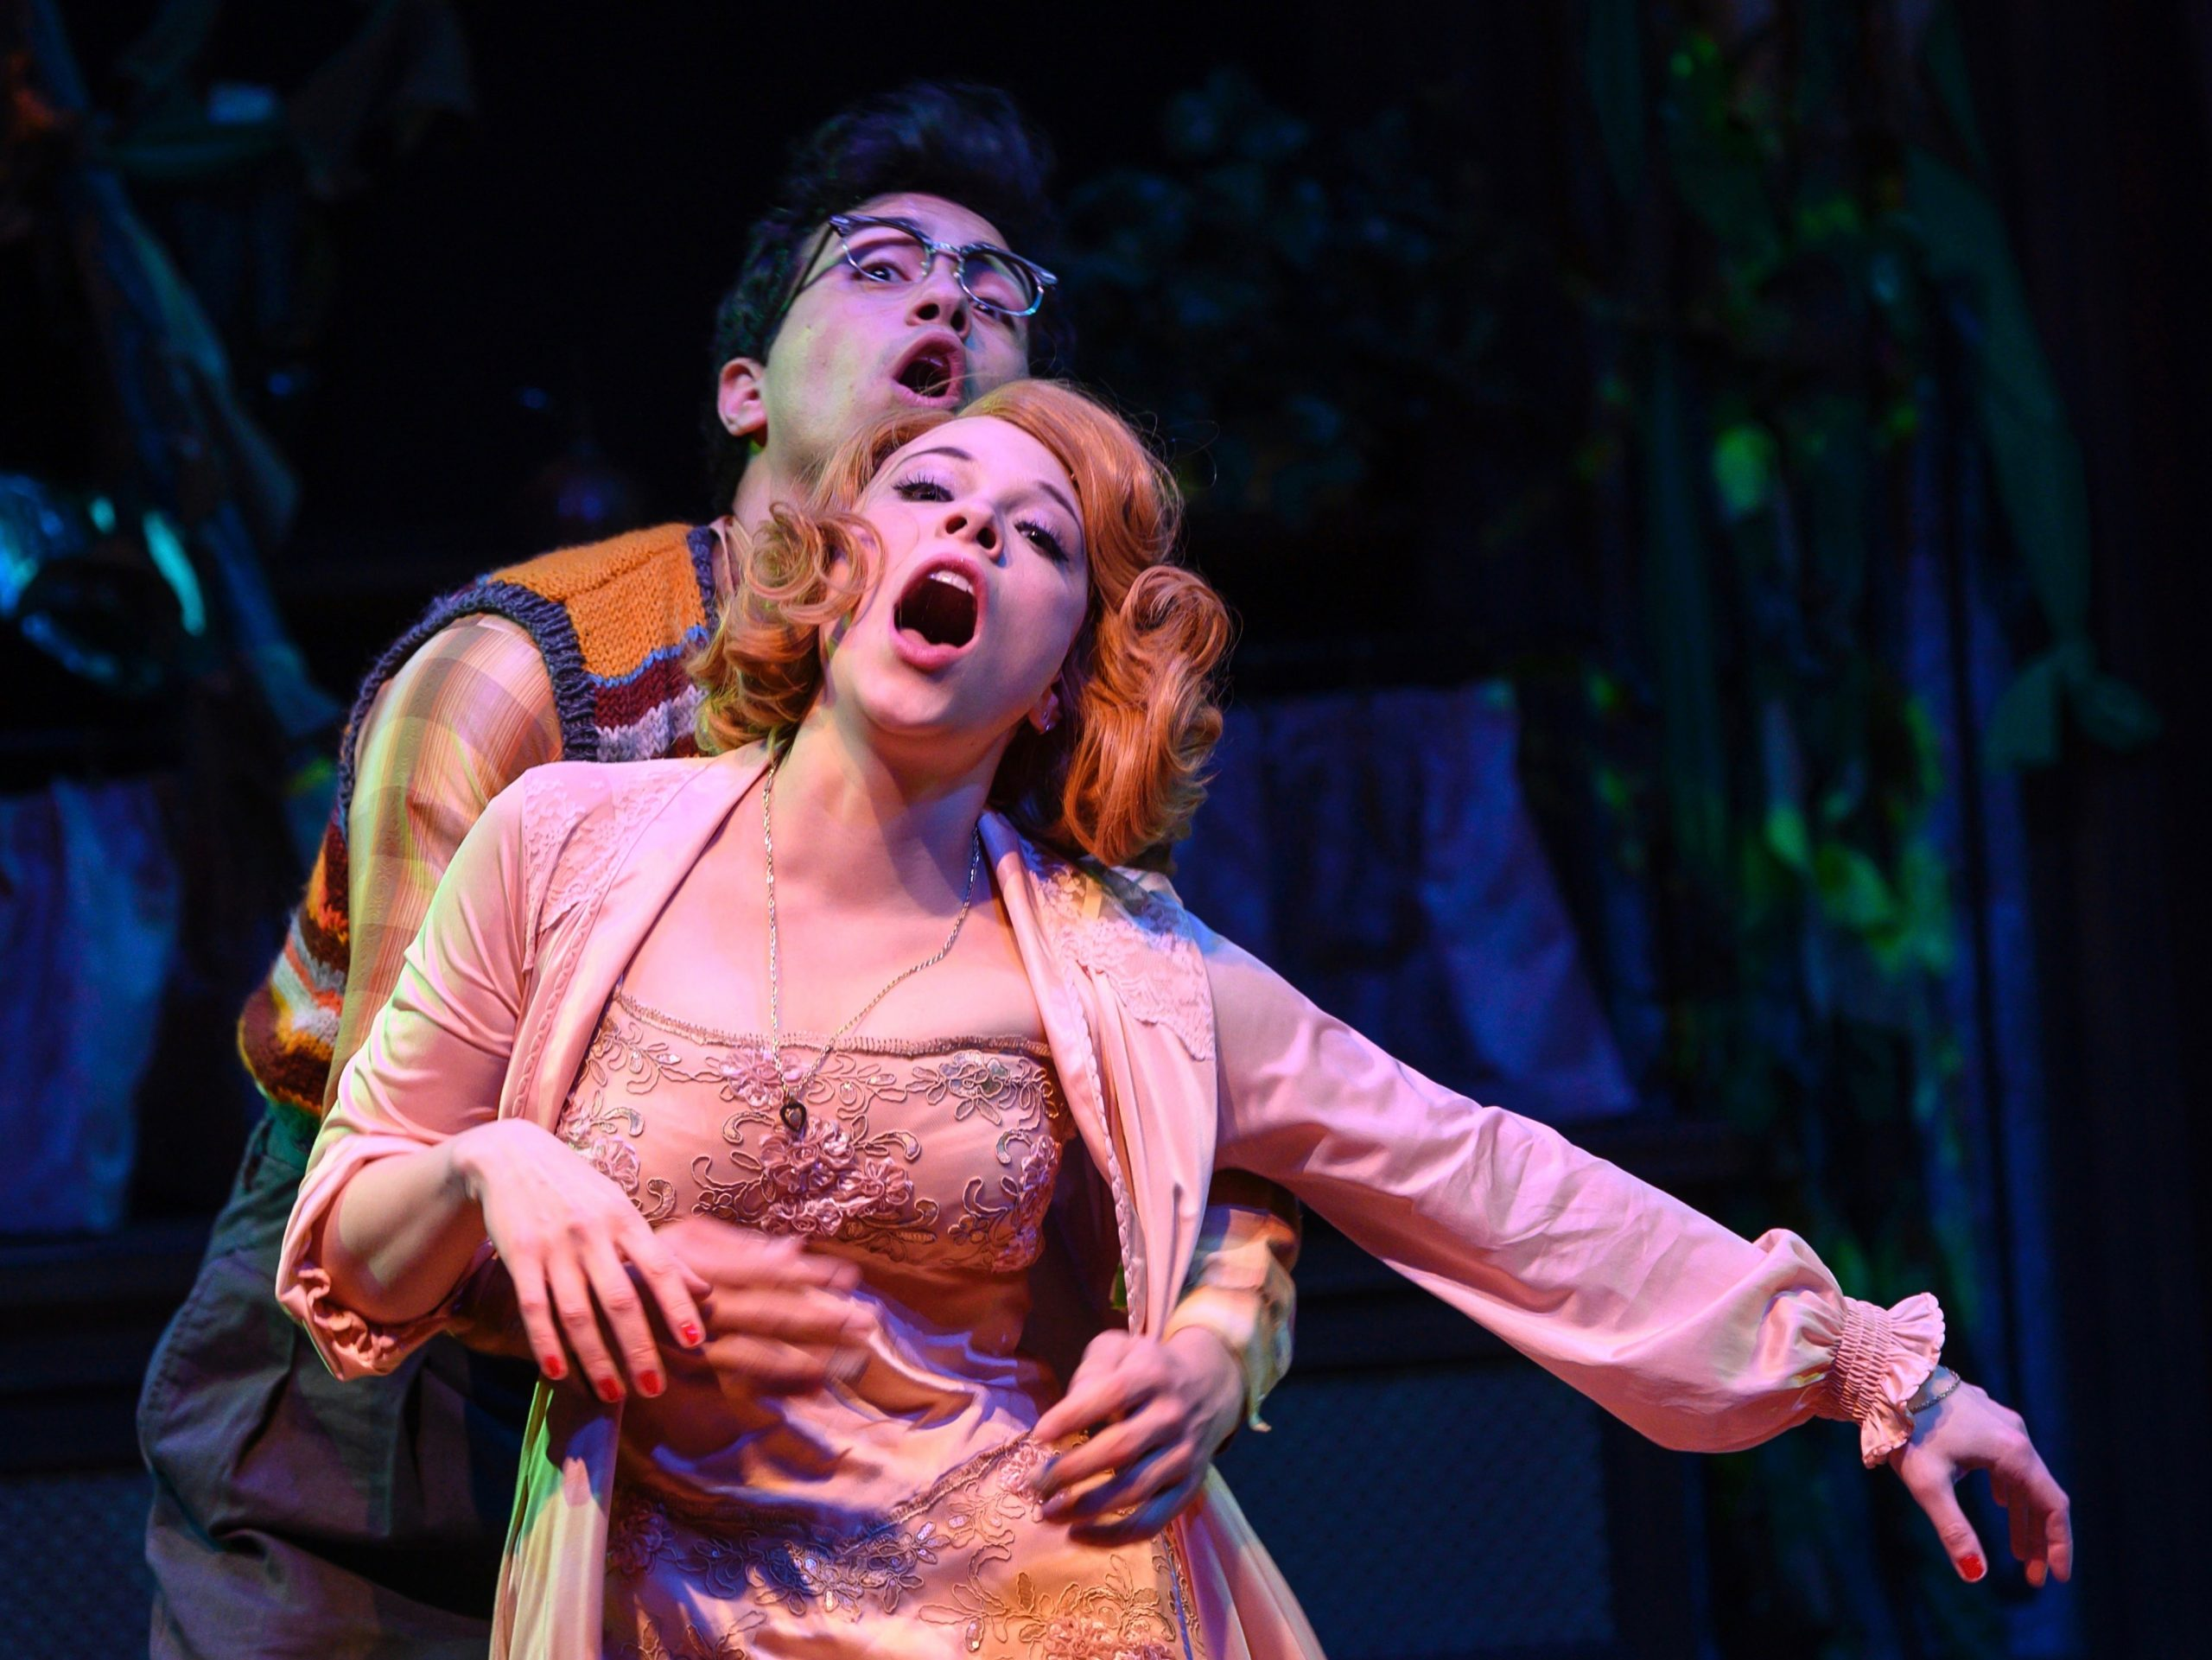 Dystopia, American Greatness, and Rock 'n Roll: 'Little Shop of Horrors' at The Public